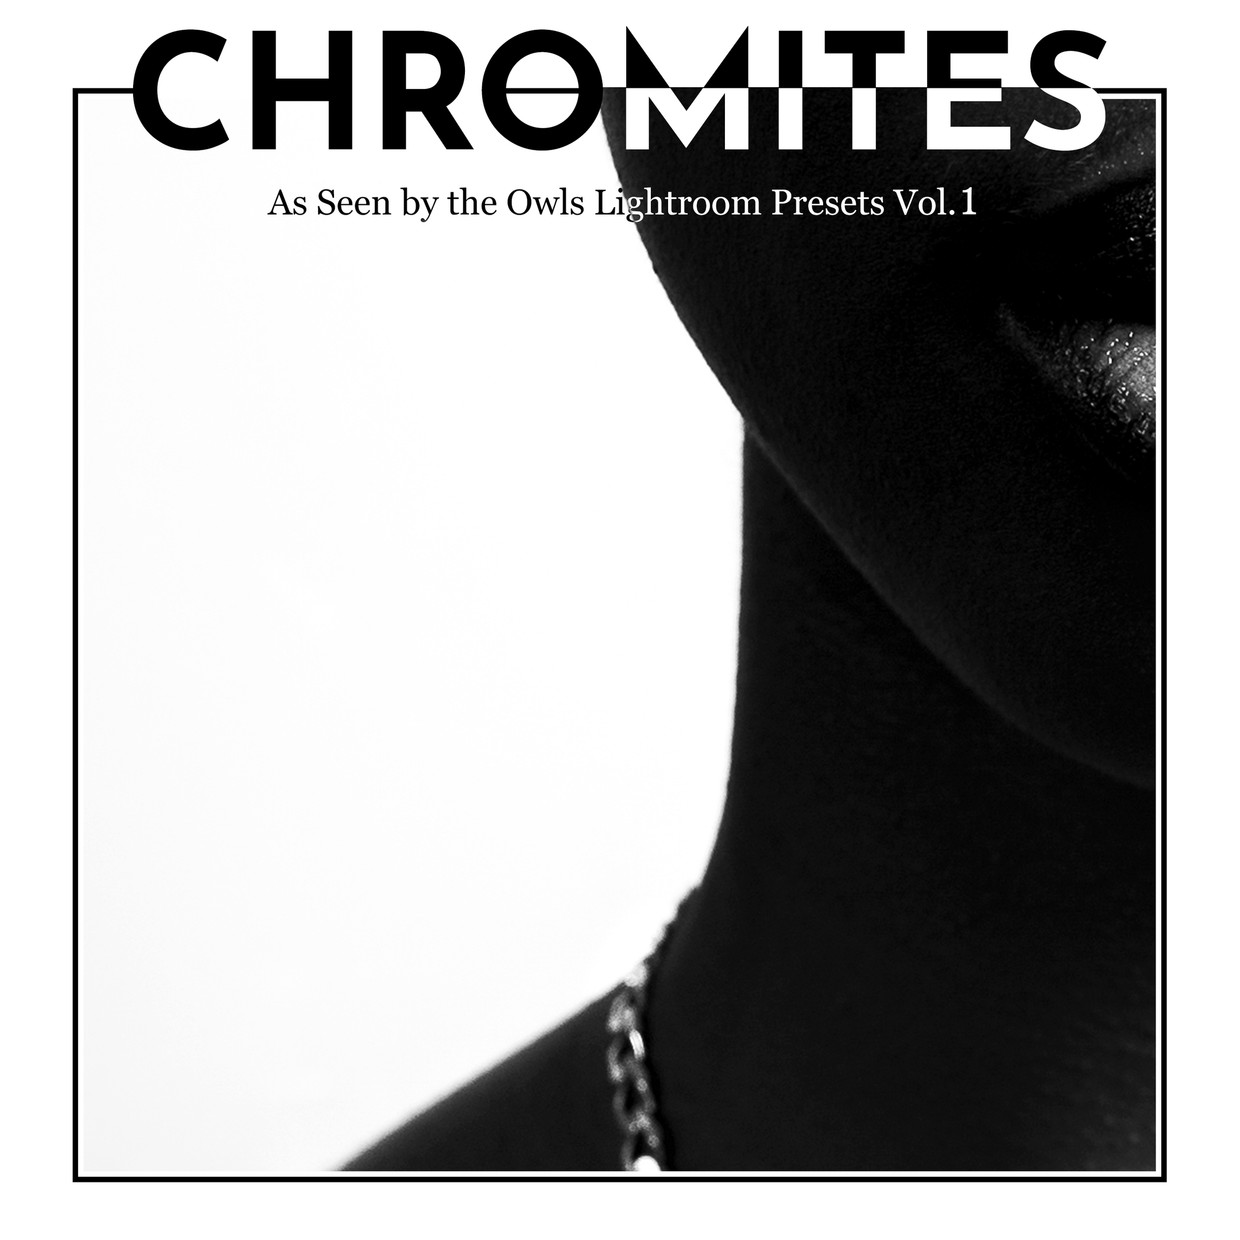 As Seen by the Owls: Lightroom Presets - CHROMITES, Vol 1.